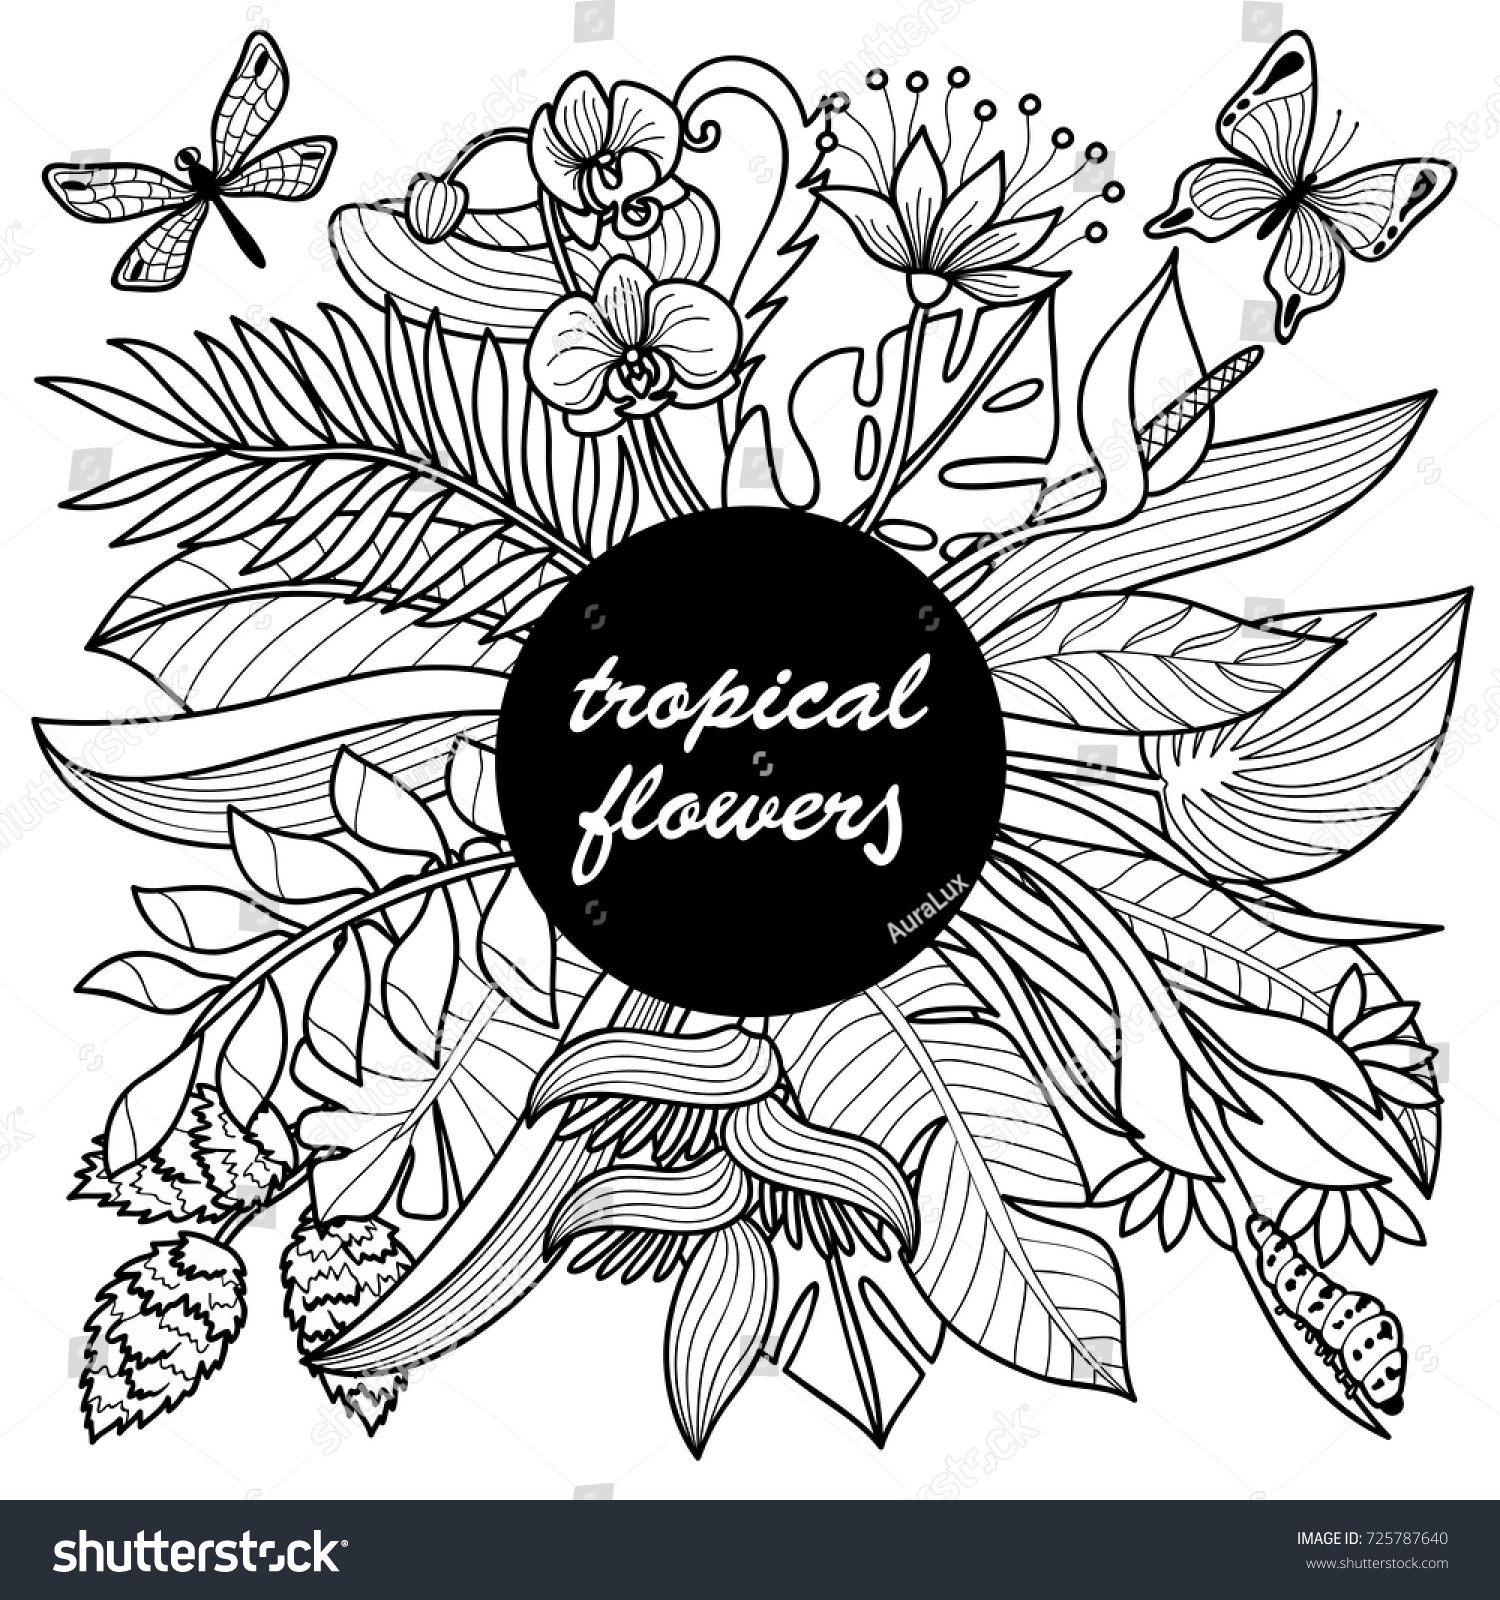 32 Tropical Flowers Coloring Pages Free Printable Coloring Pages